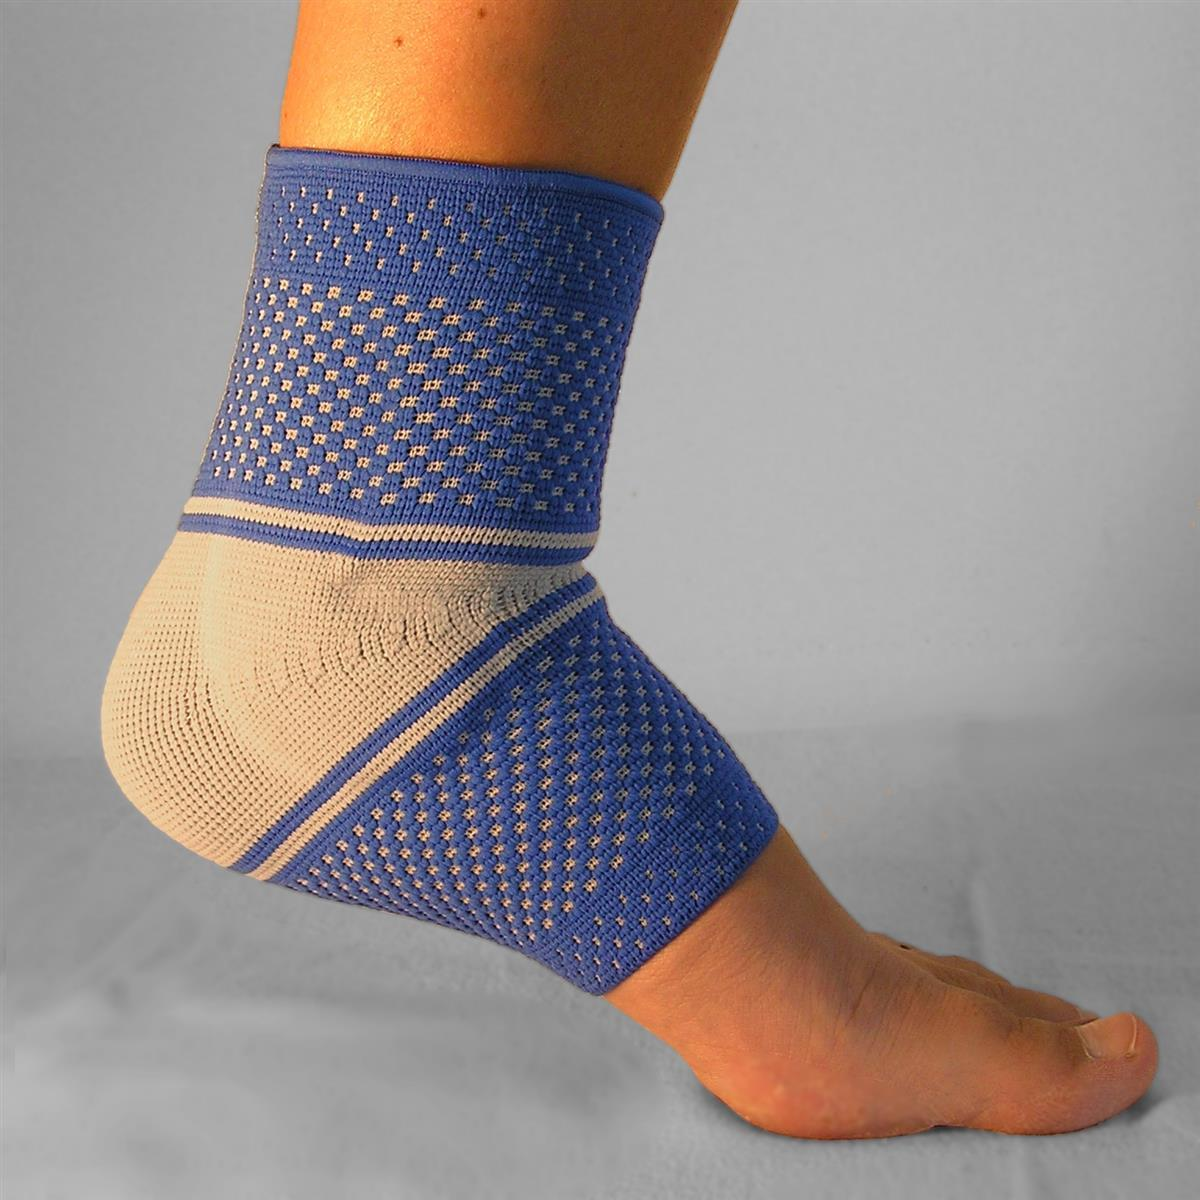 Regeco Ankle Brace Silicone Reinforcement Right